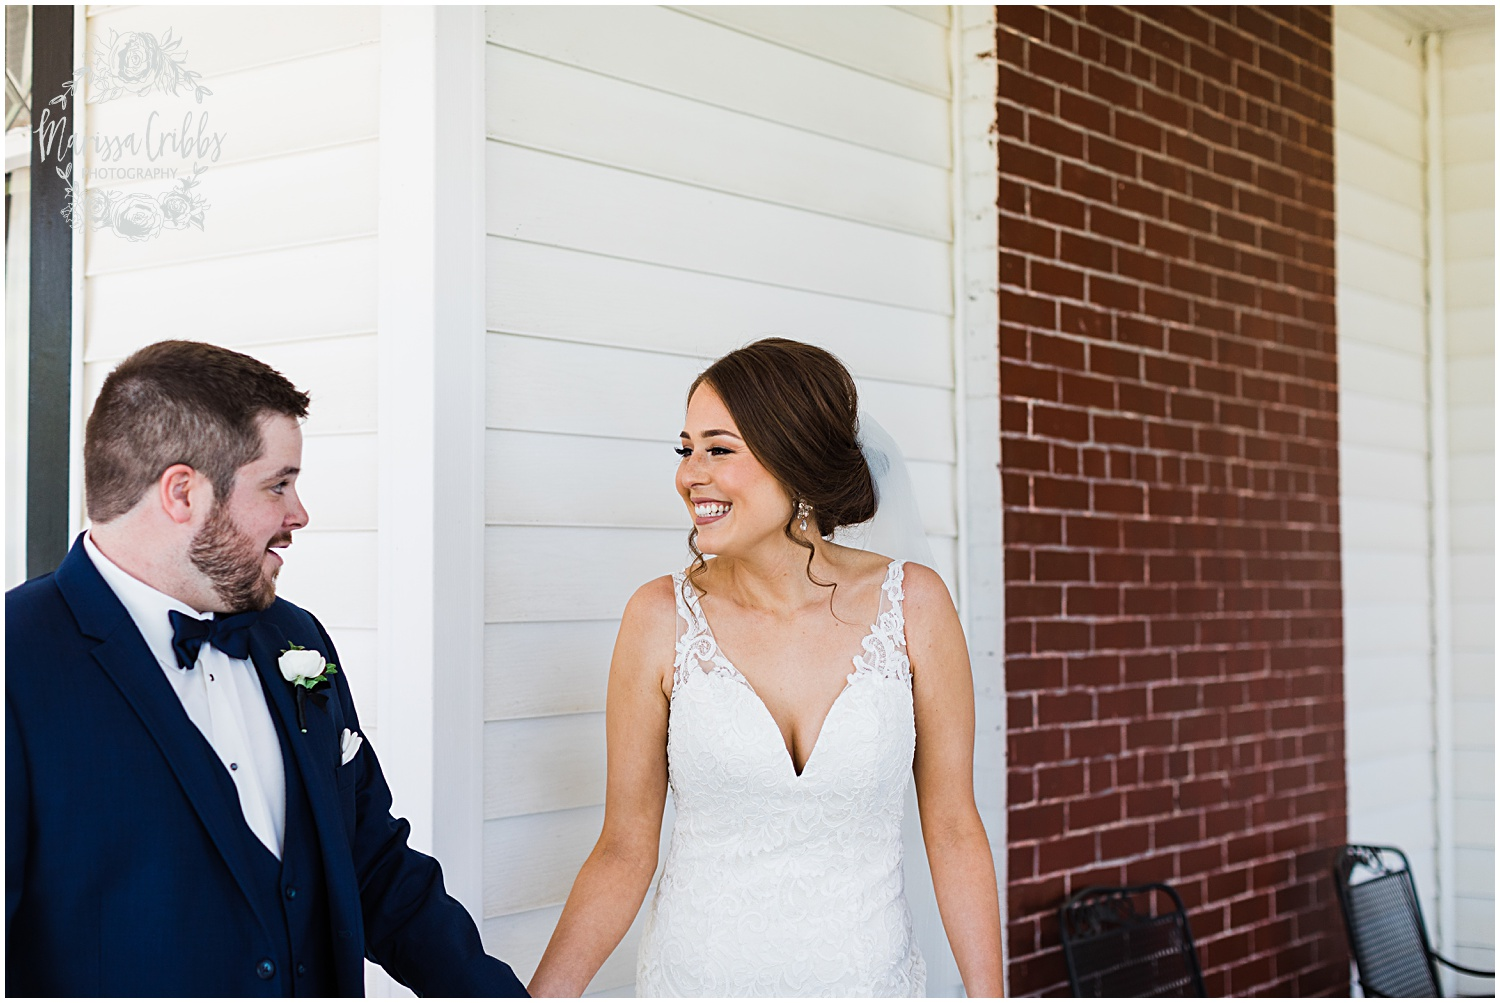 JESSICA & MARK MARRIED SNEAK PEEKS | 1890 EVENT SPACE WEDDING | MARISSA CRIBBS PHOTOGRAPHY_7807.jpg